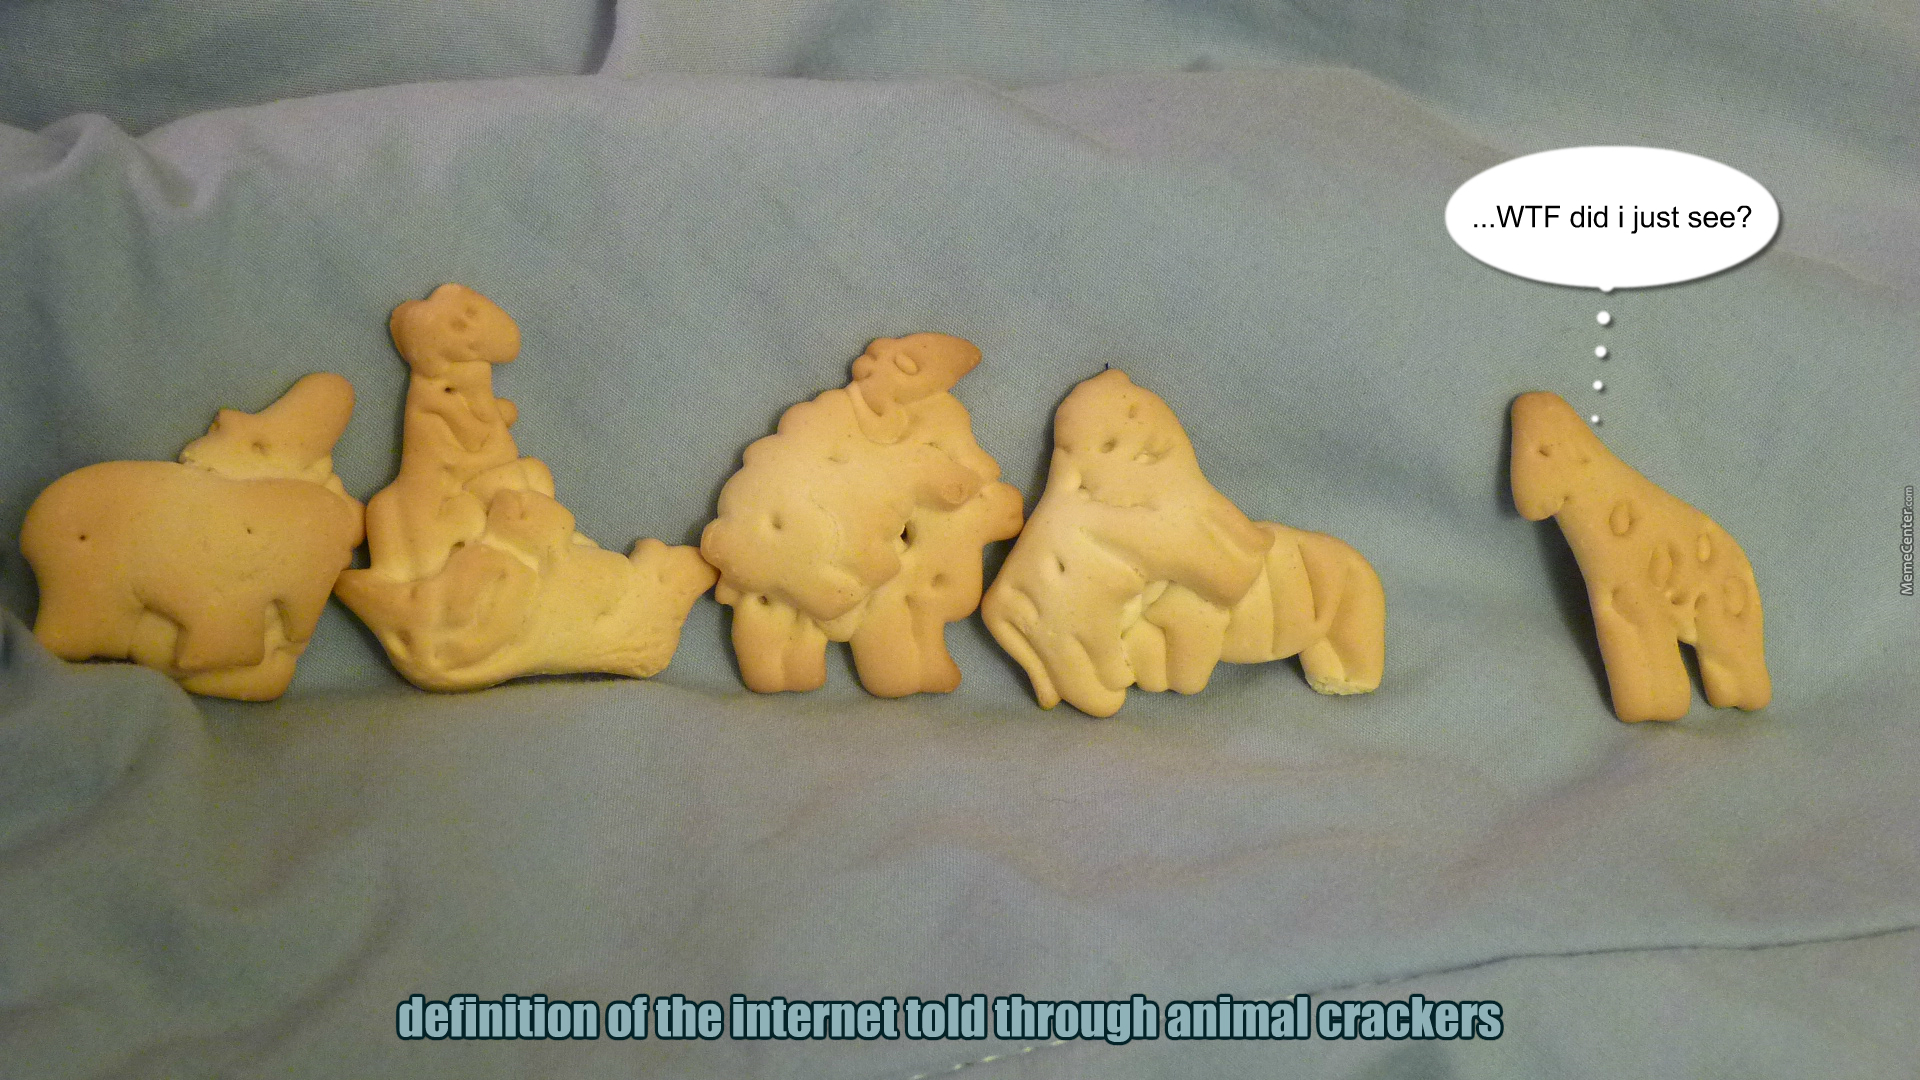 eating animal crackers if you know what i am_o_3819137 eating animal crackers if you know what i am by shramorama